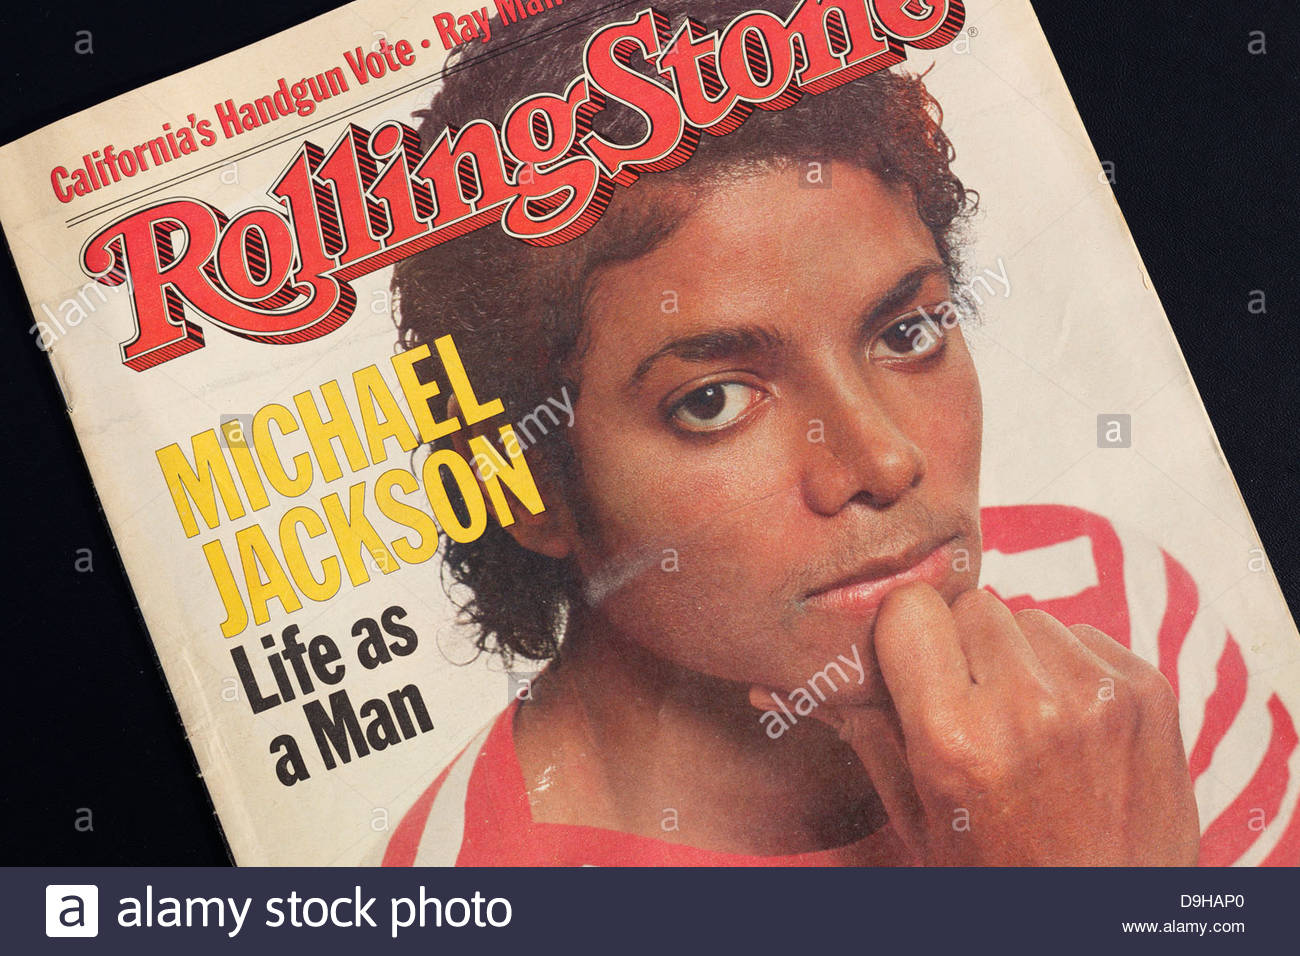 Rolling Stone magazine cover with Michael Jackson. Editorial use only. Commercial use prohibited. - Stock Image